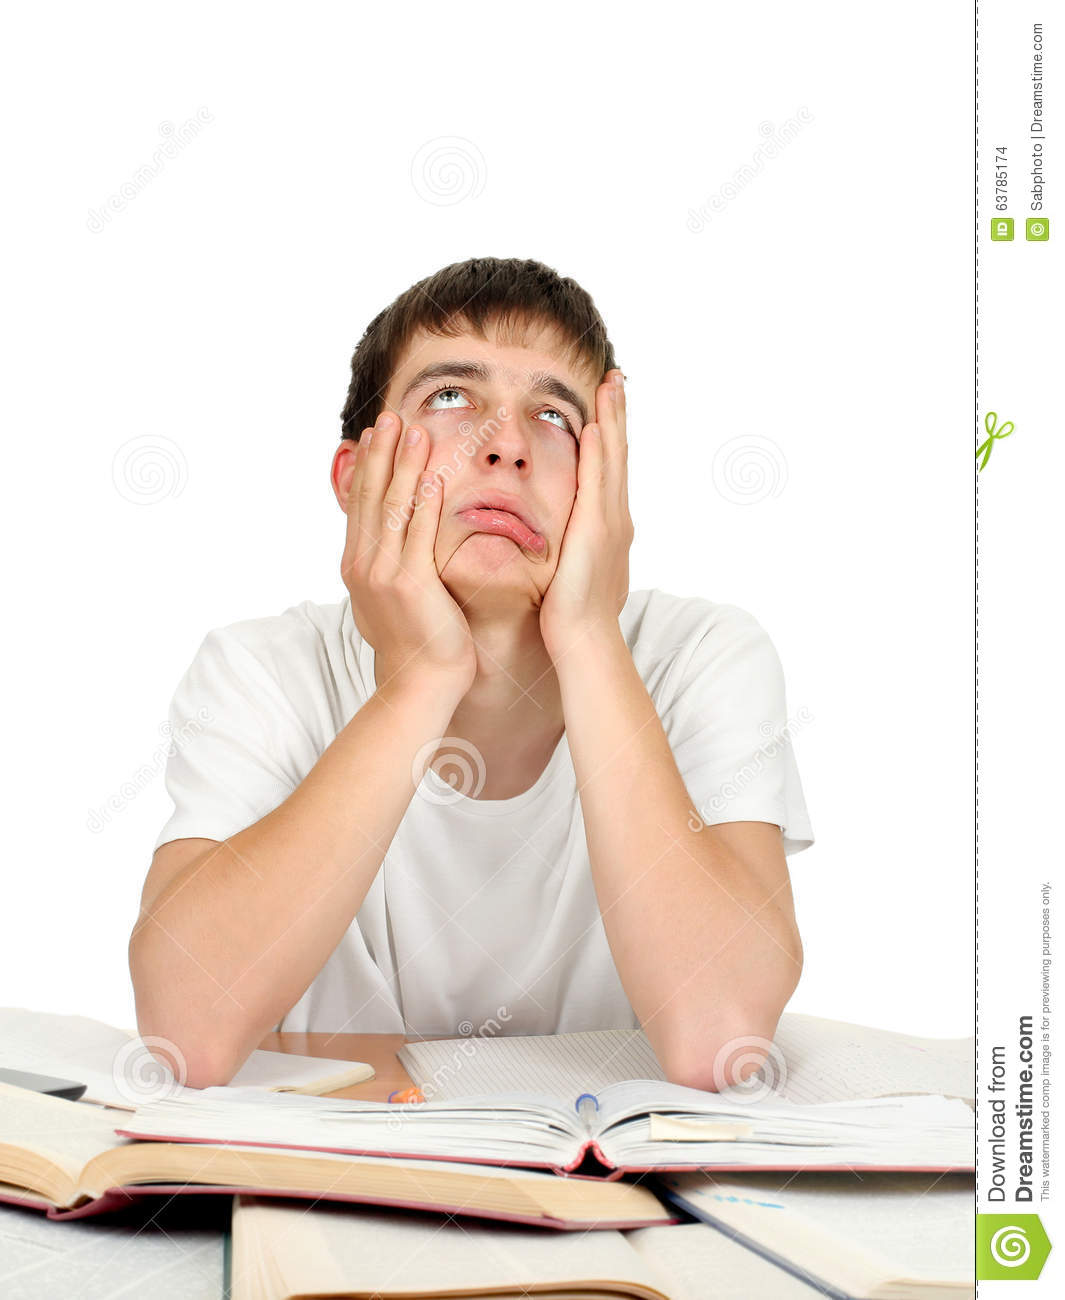 sleepy student Every day i sleep about 6 hours but when i'm studying i feel very sleepy and tired what can i do.